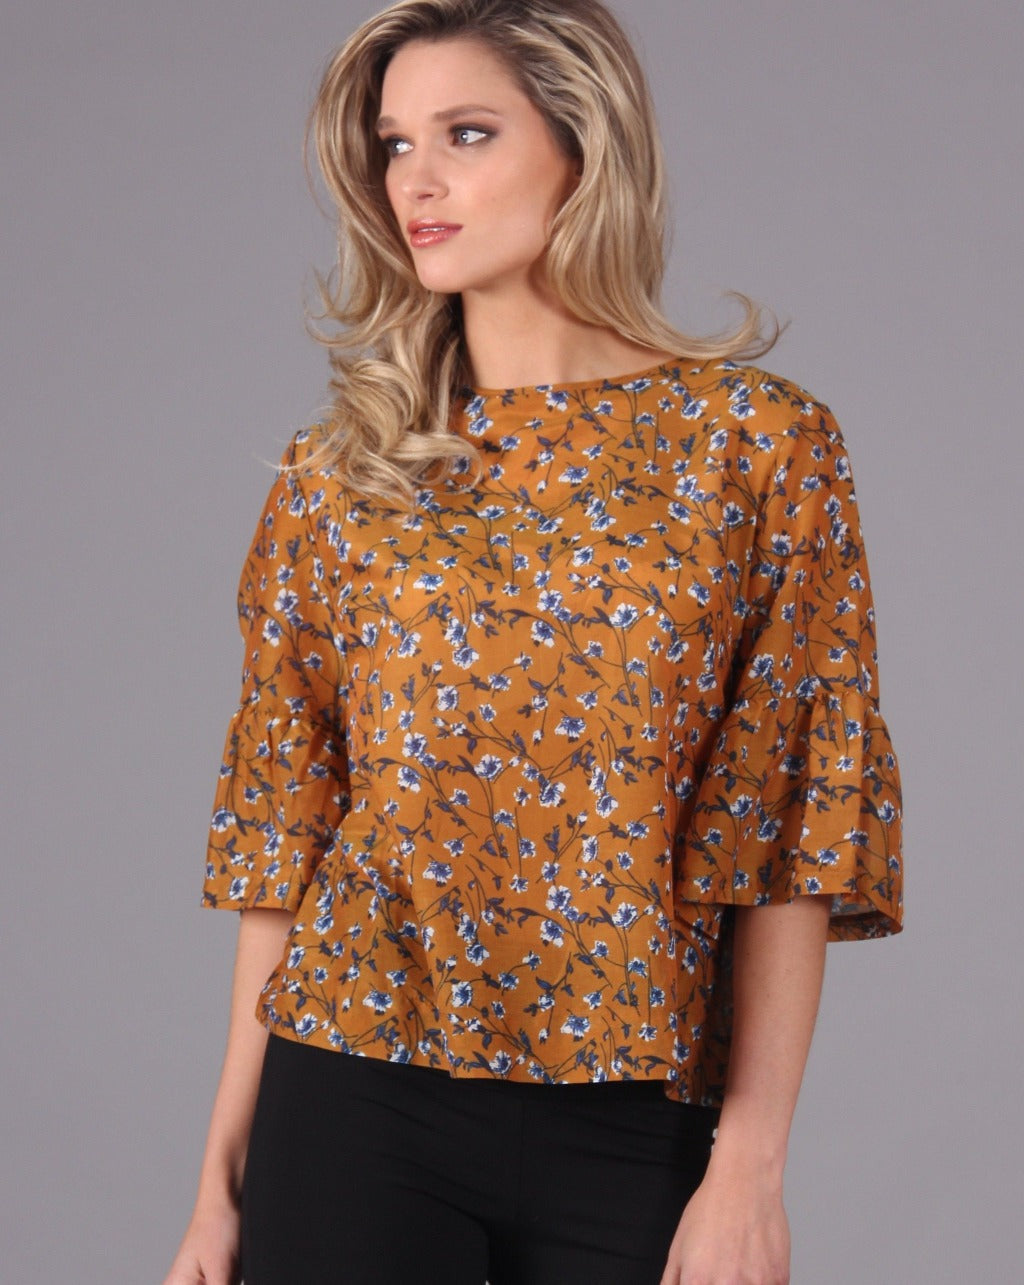 GRETA Top in Printed Cotton Silk -FINAL SALE